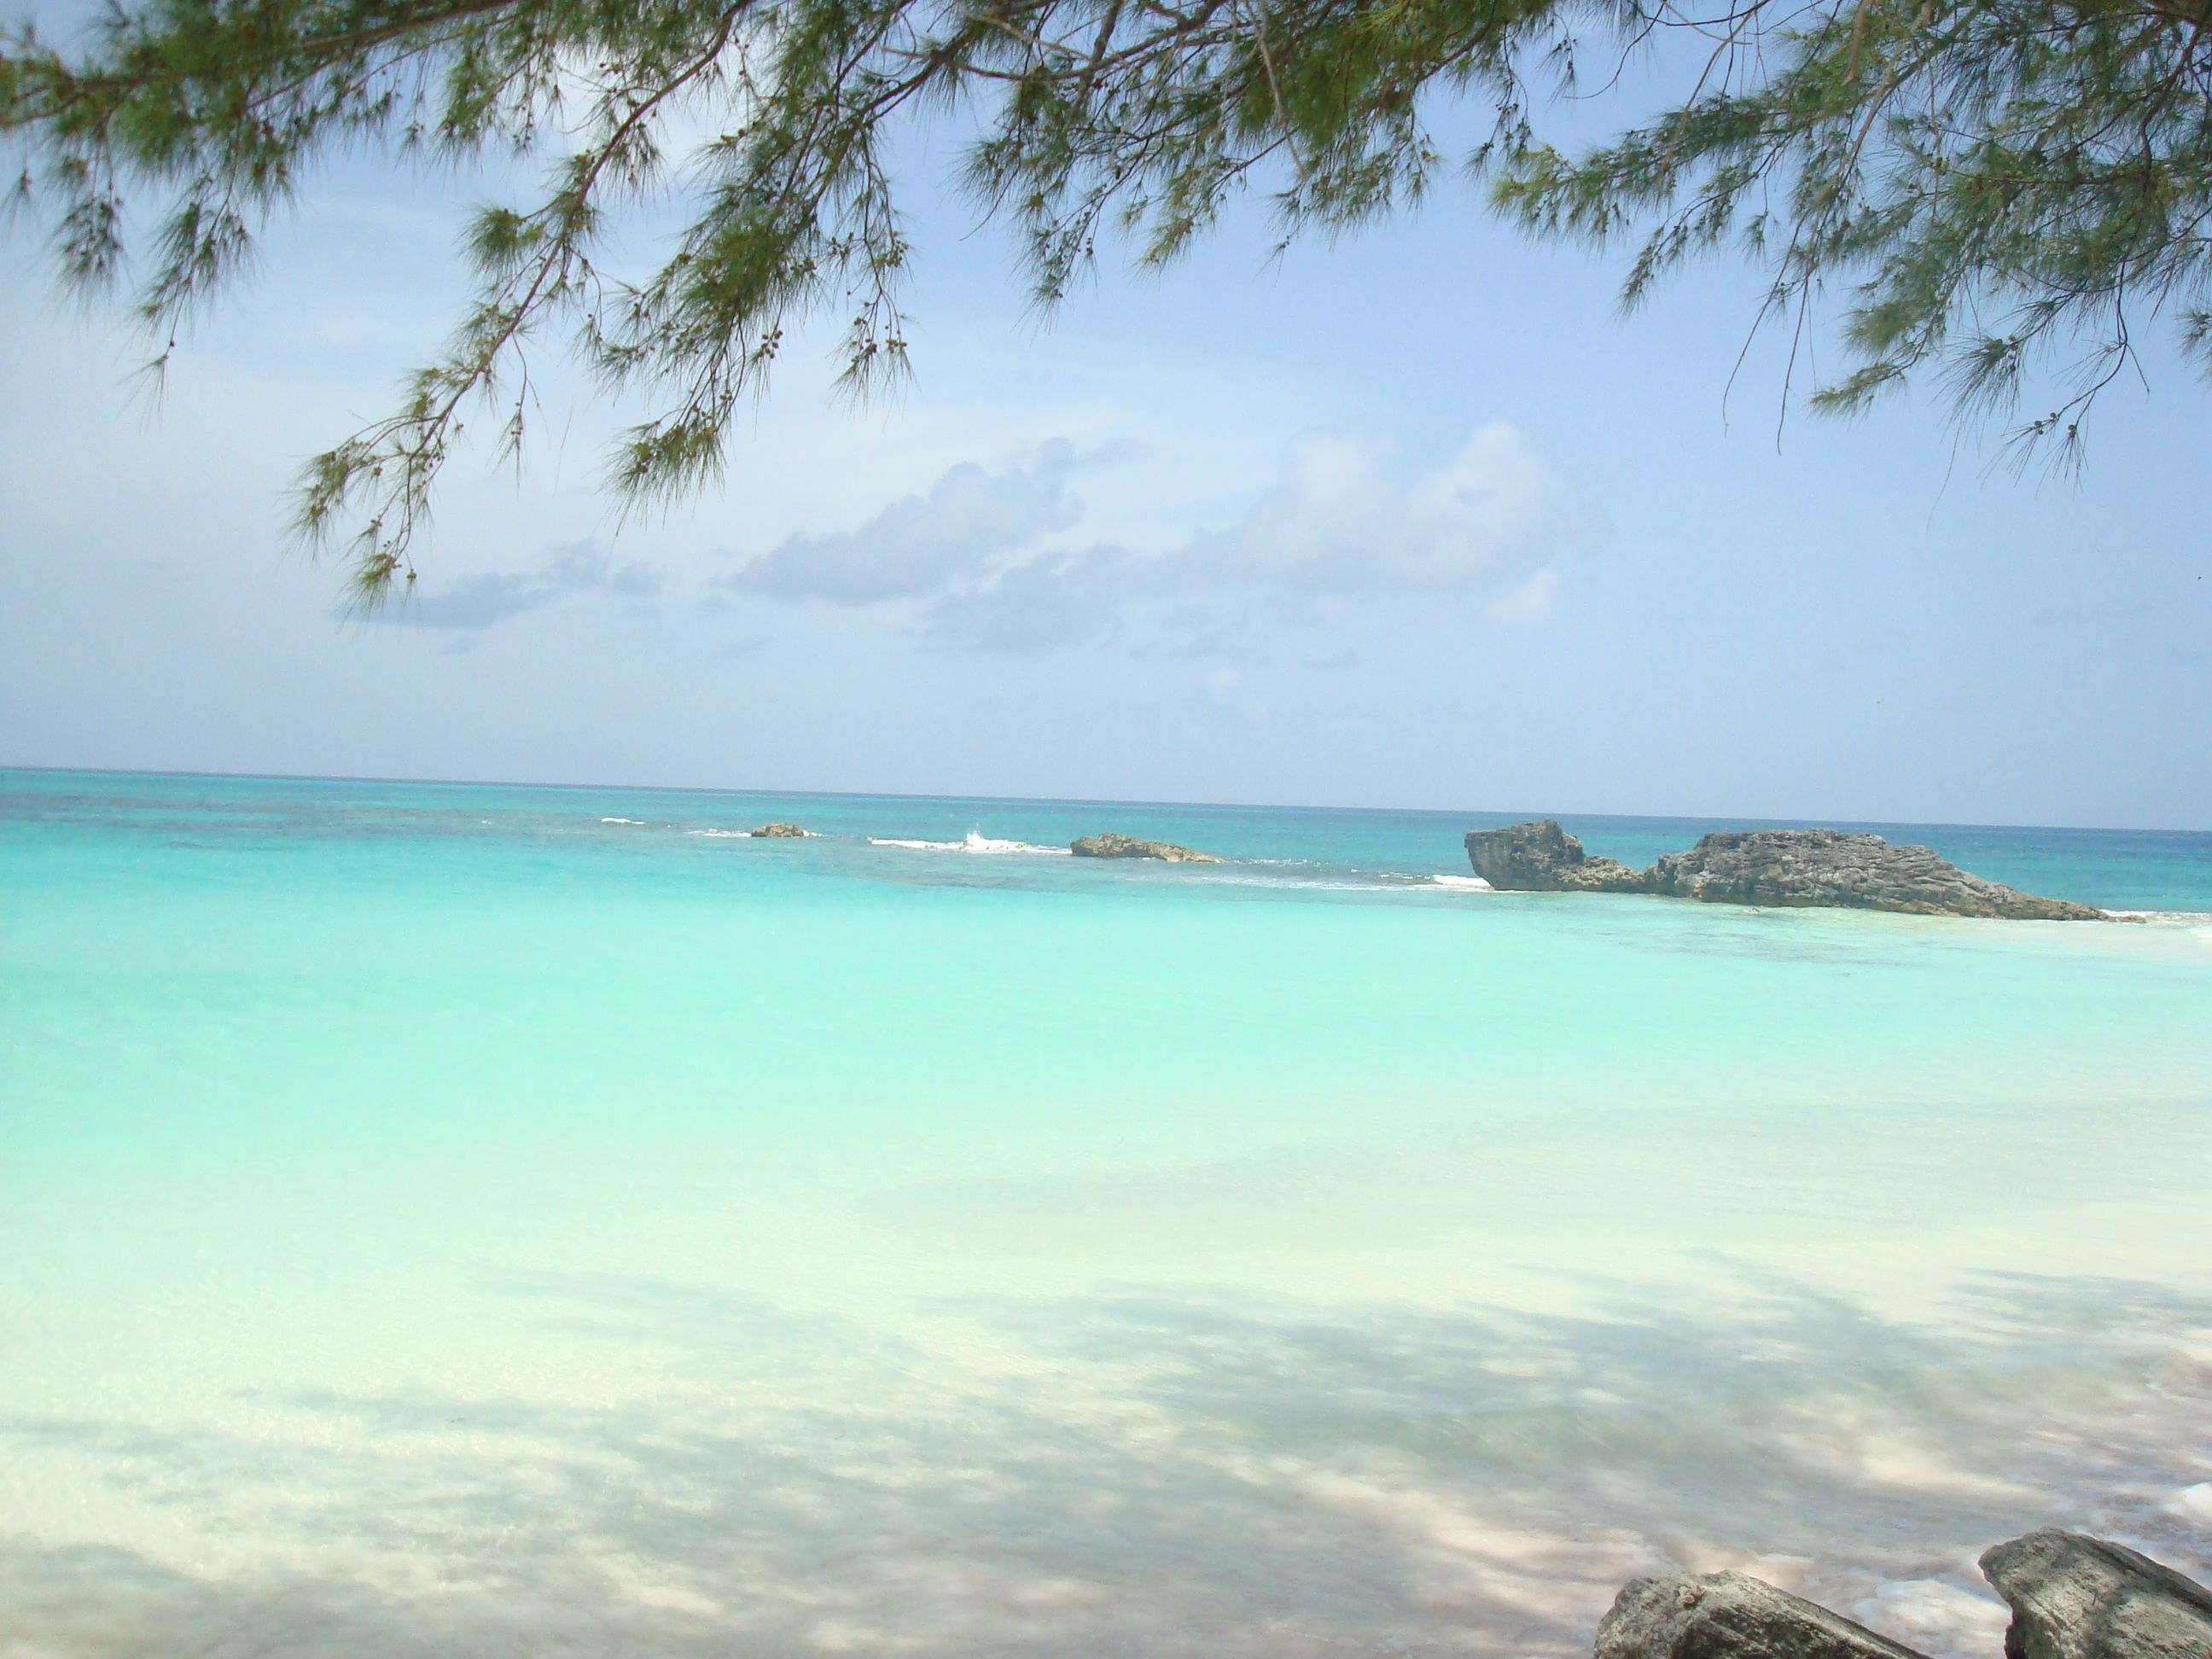 Governor S Harbor Eluethera Bahamas The Beautiful View